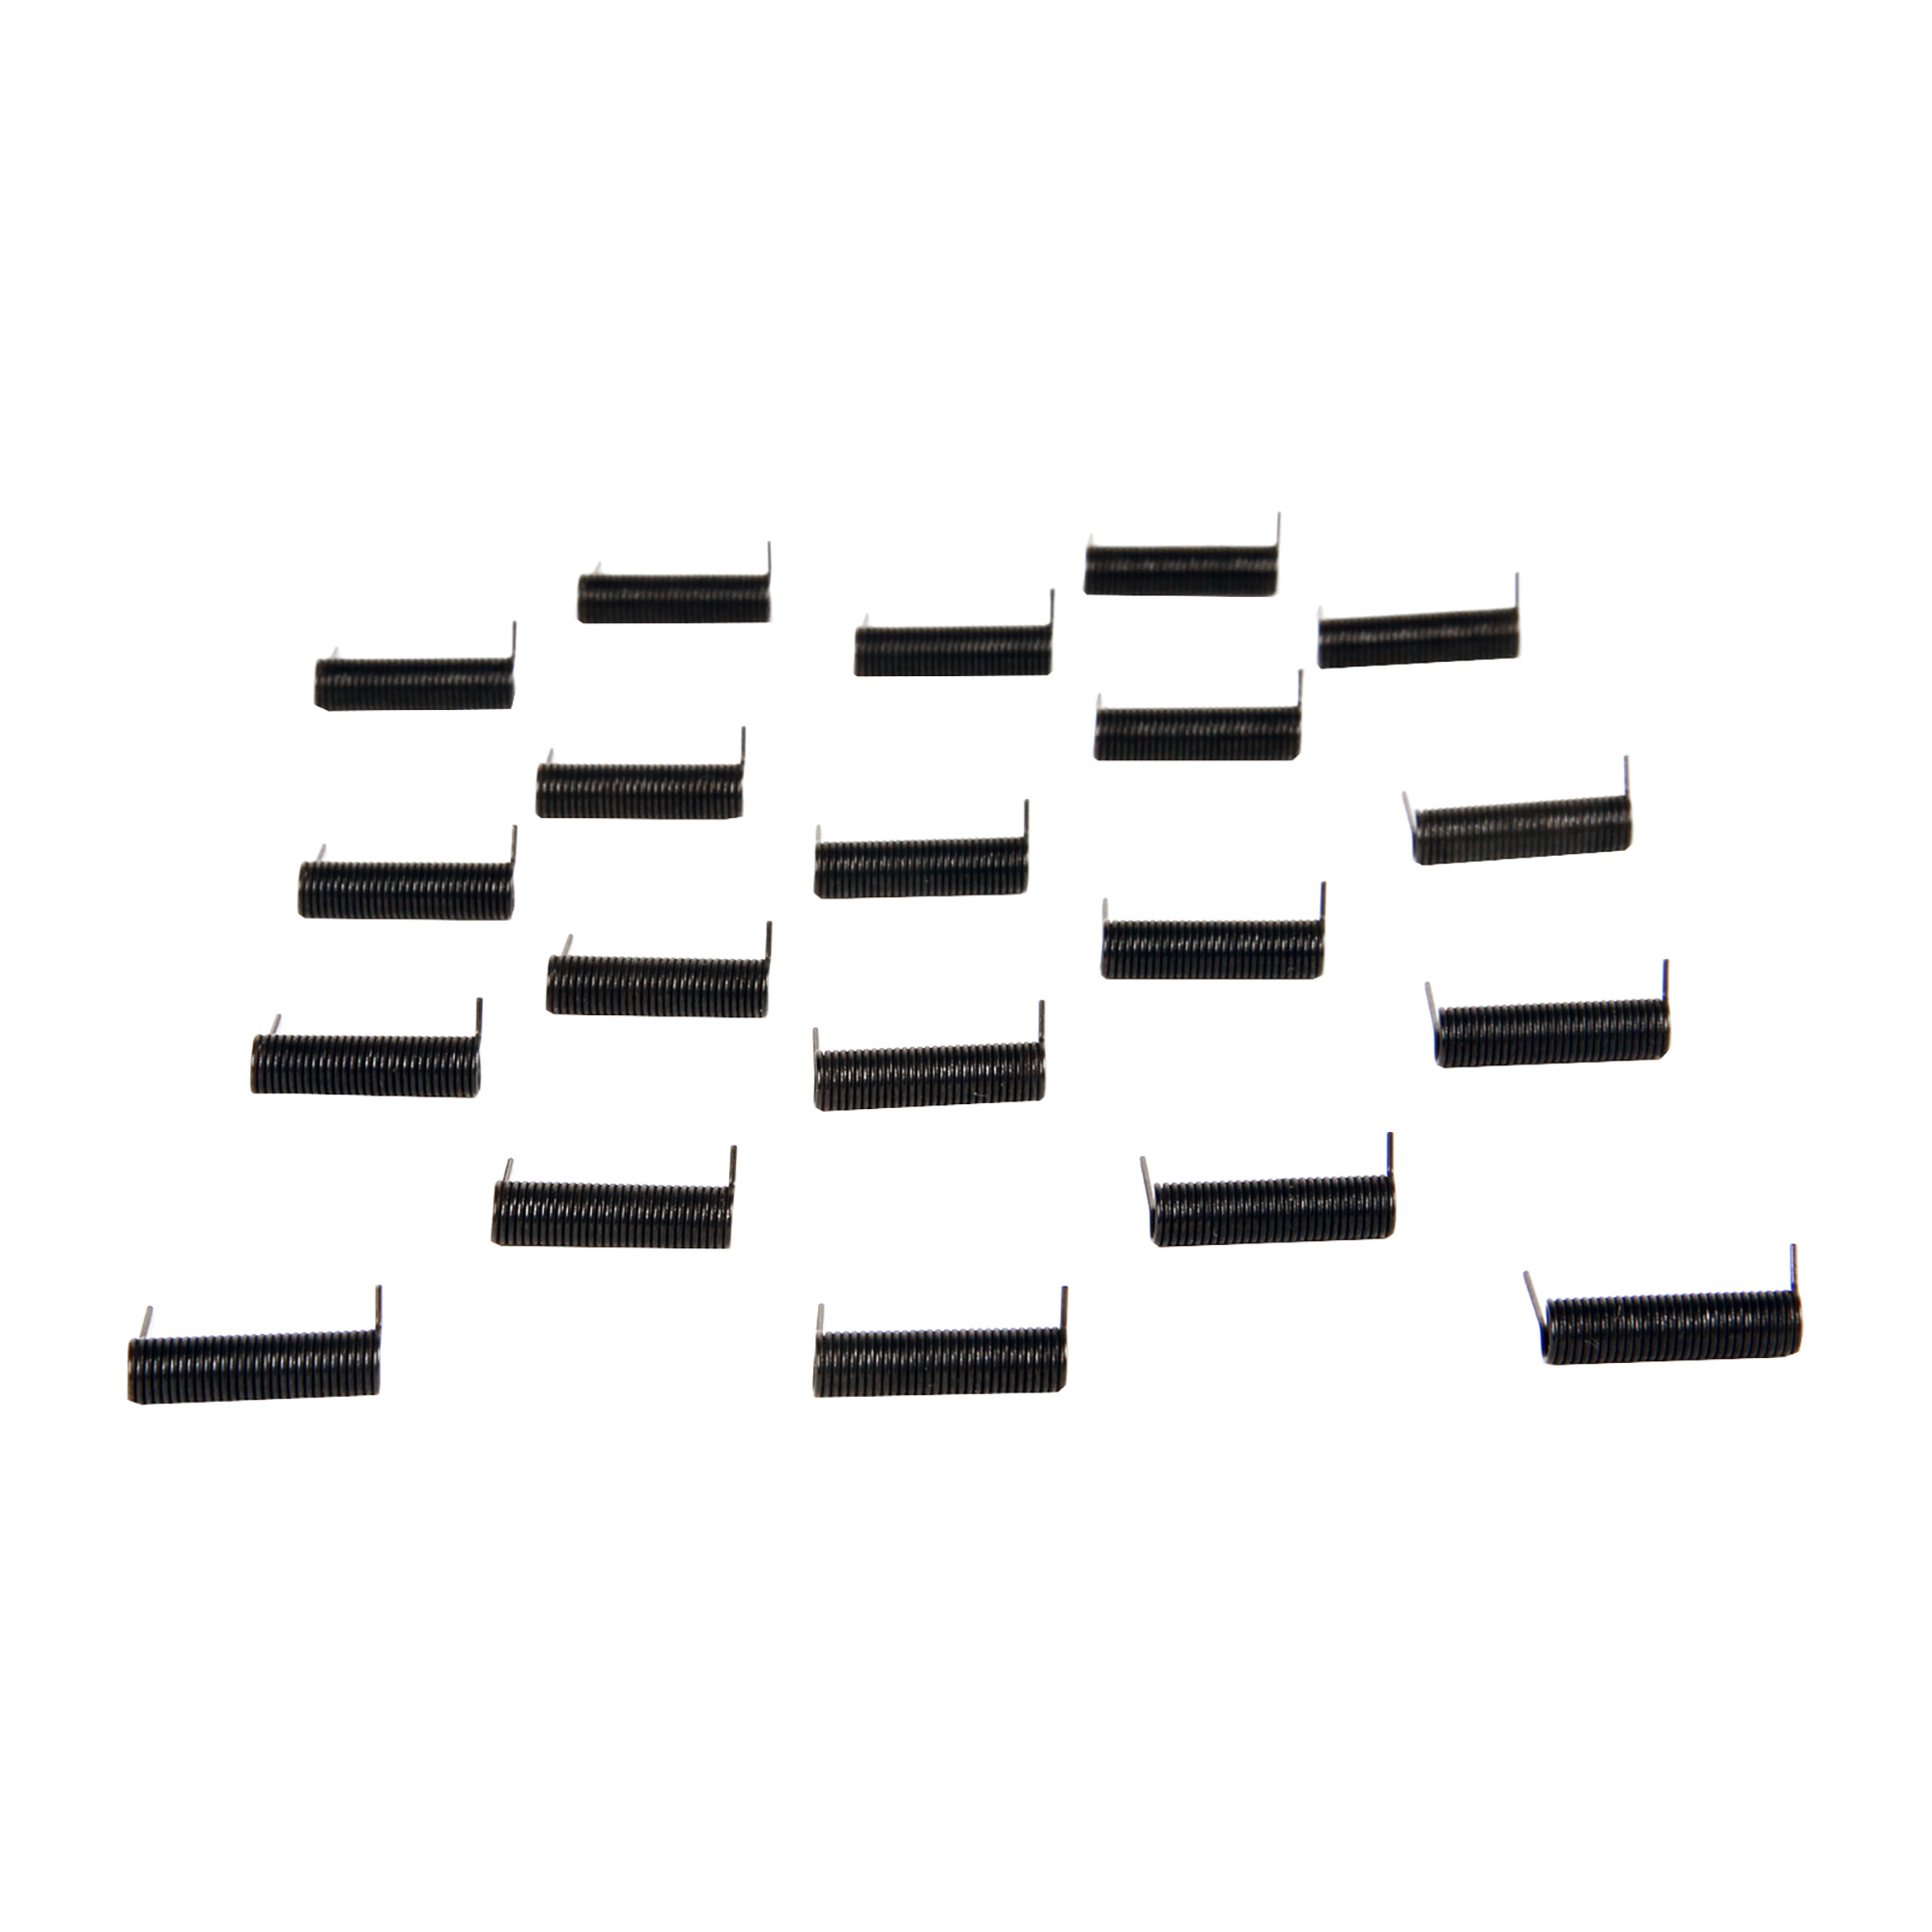 This is a 20-Pack of LBE AR-15 ejection port cover springs. Made in the USA.